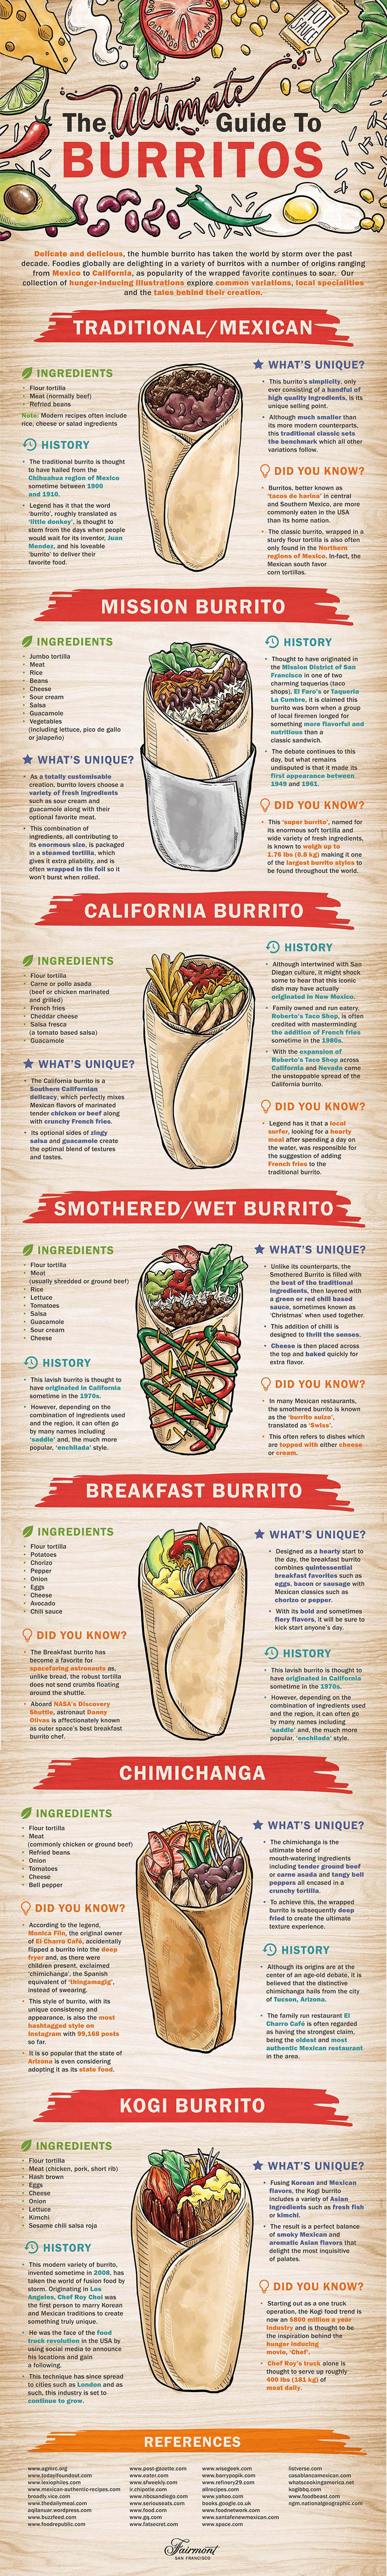 The ultimate guide to burritos infographic burritos the ultimate guide to burritos infographic pooptronica